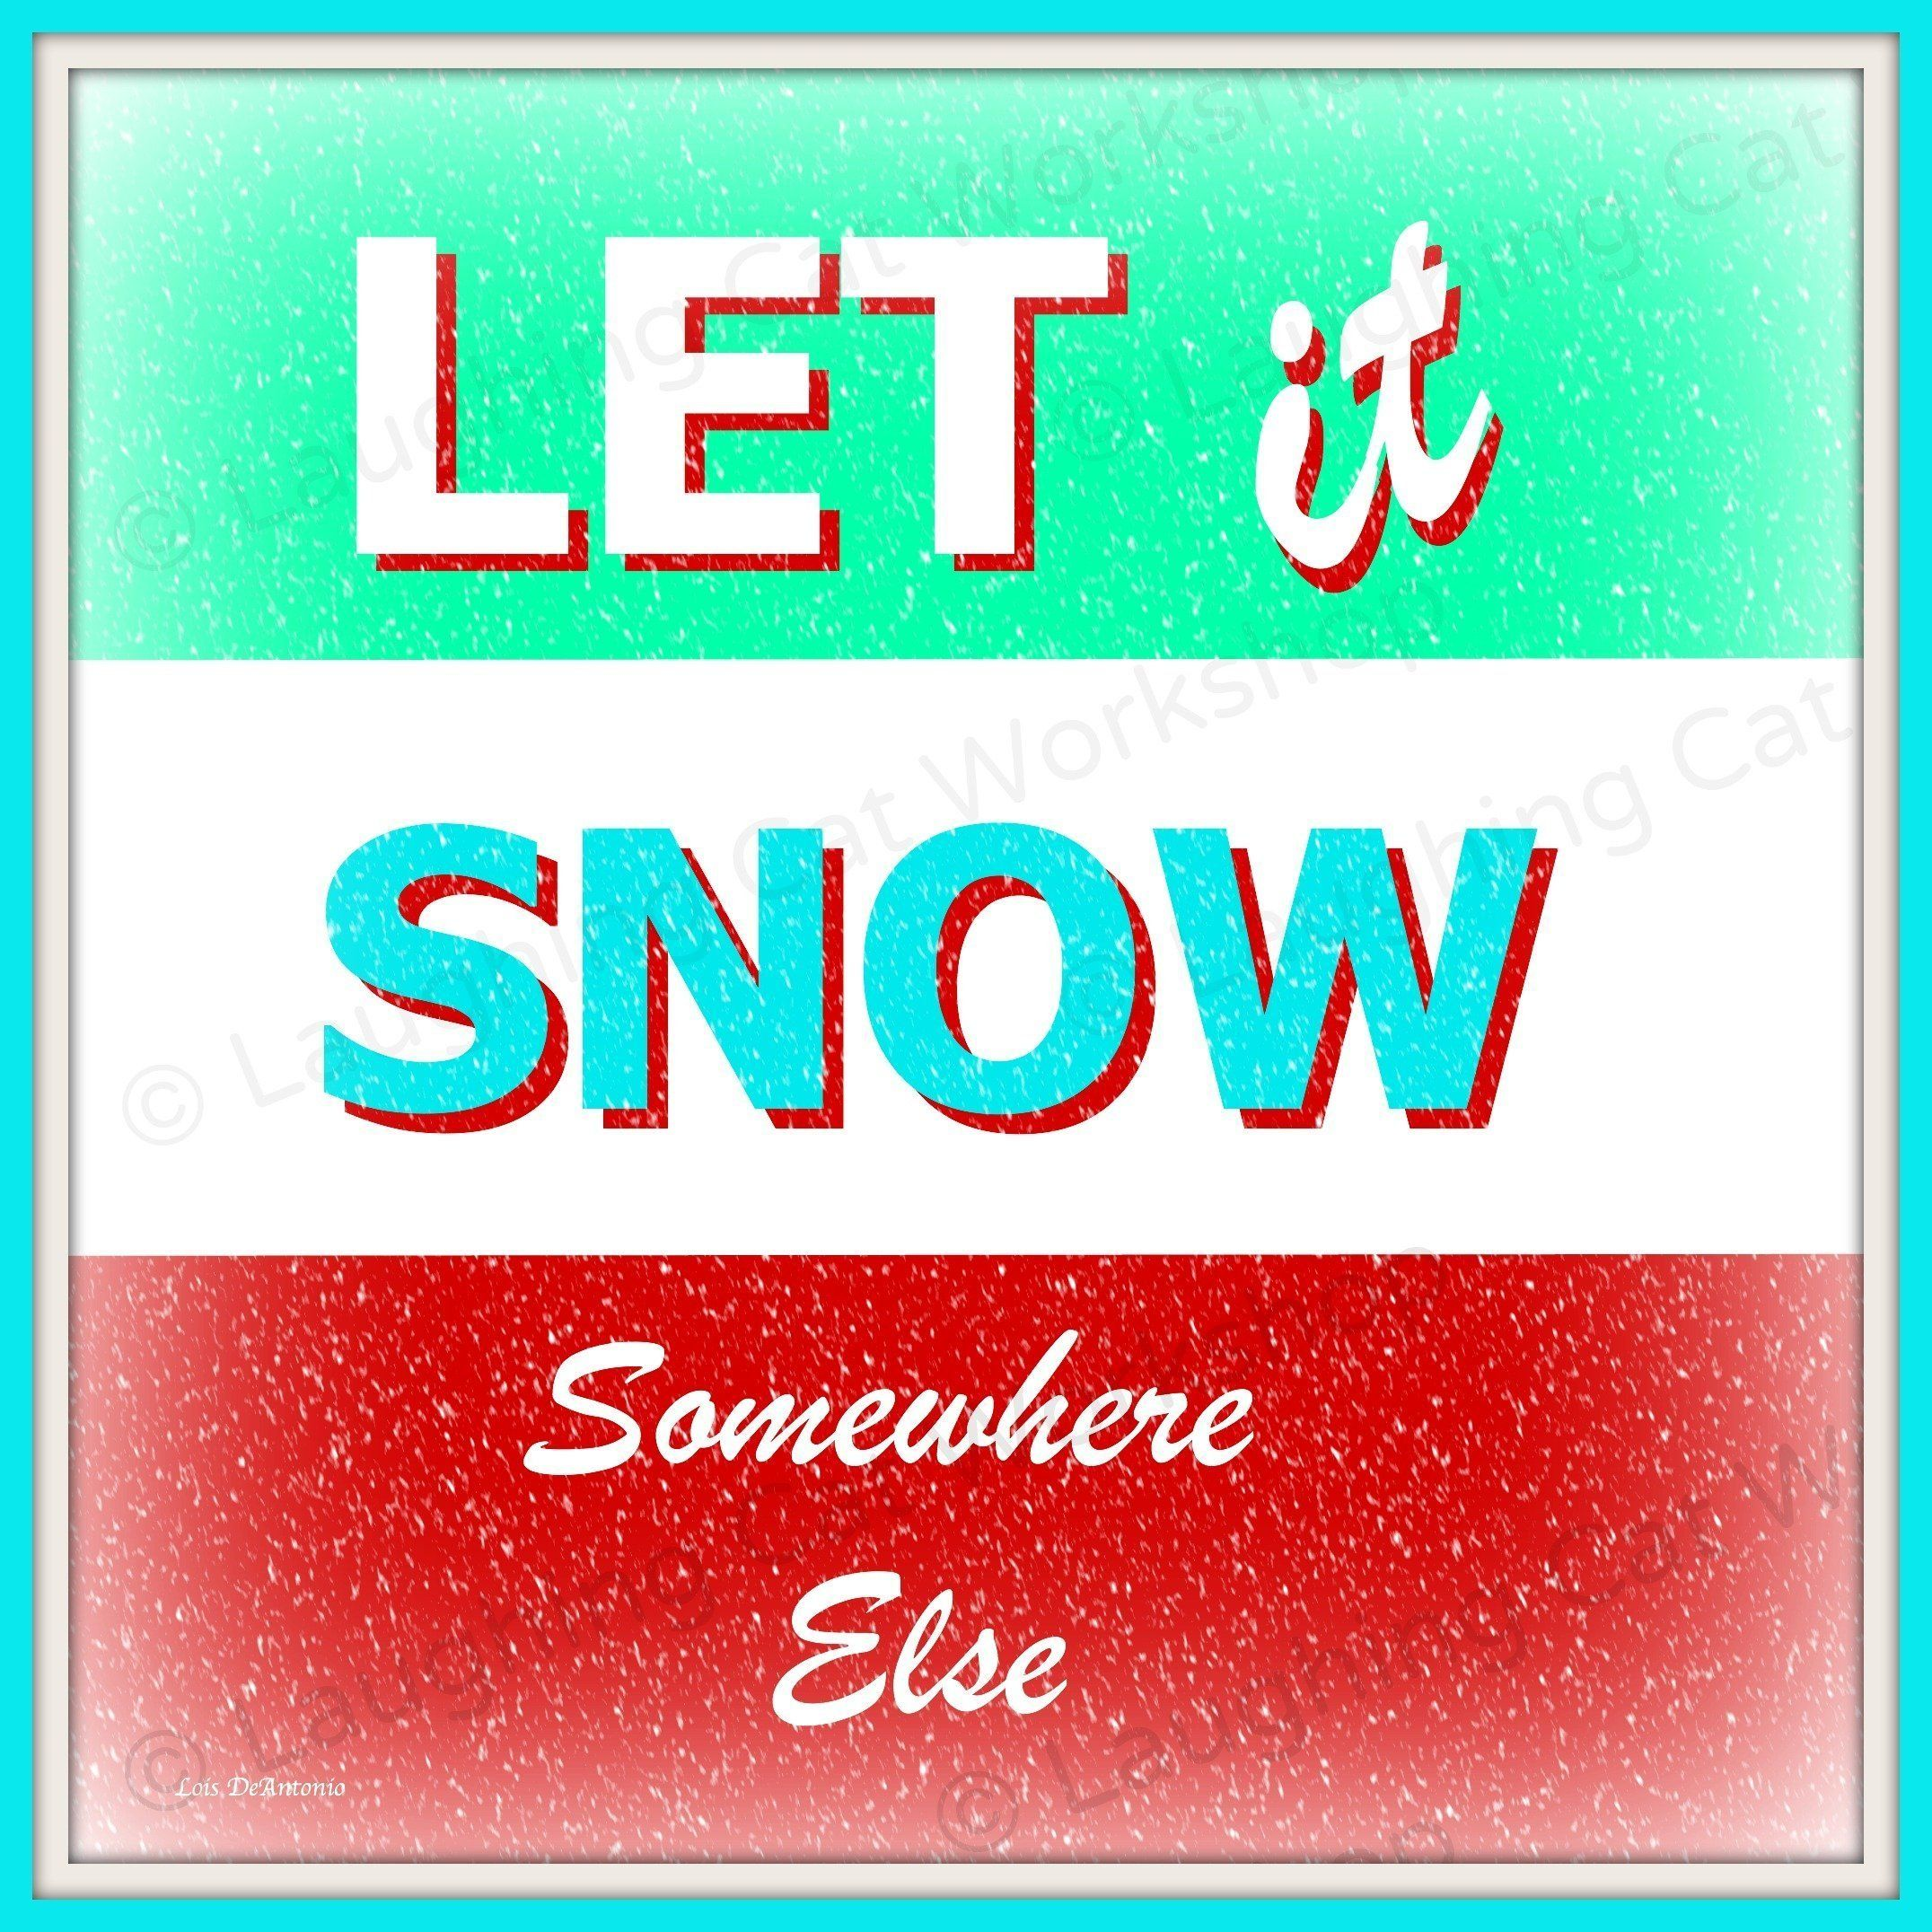 Snowing christmas decoration let it snow - Funny Holiday Decor Funny Christmas Decor Let It Snow Somewhere Else Funny Snow